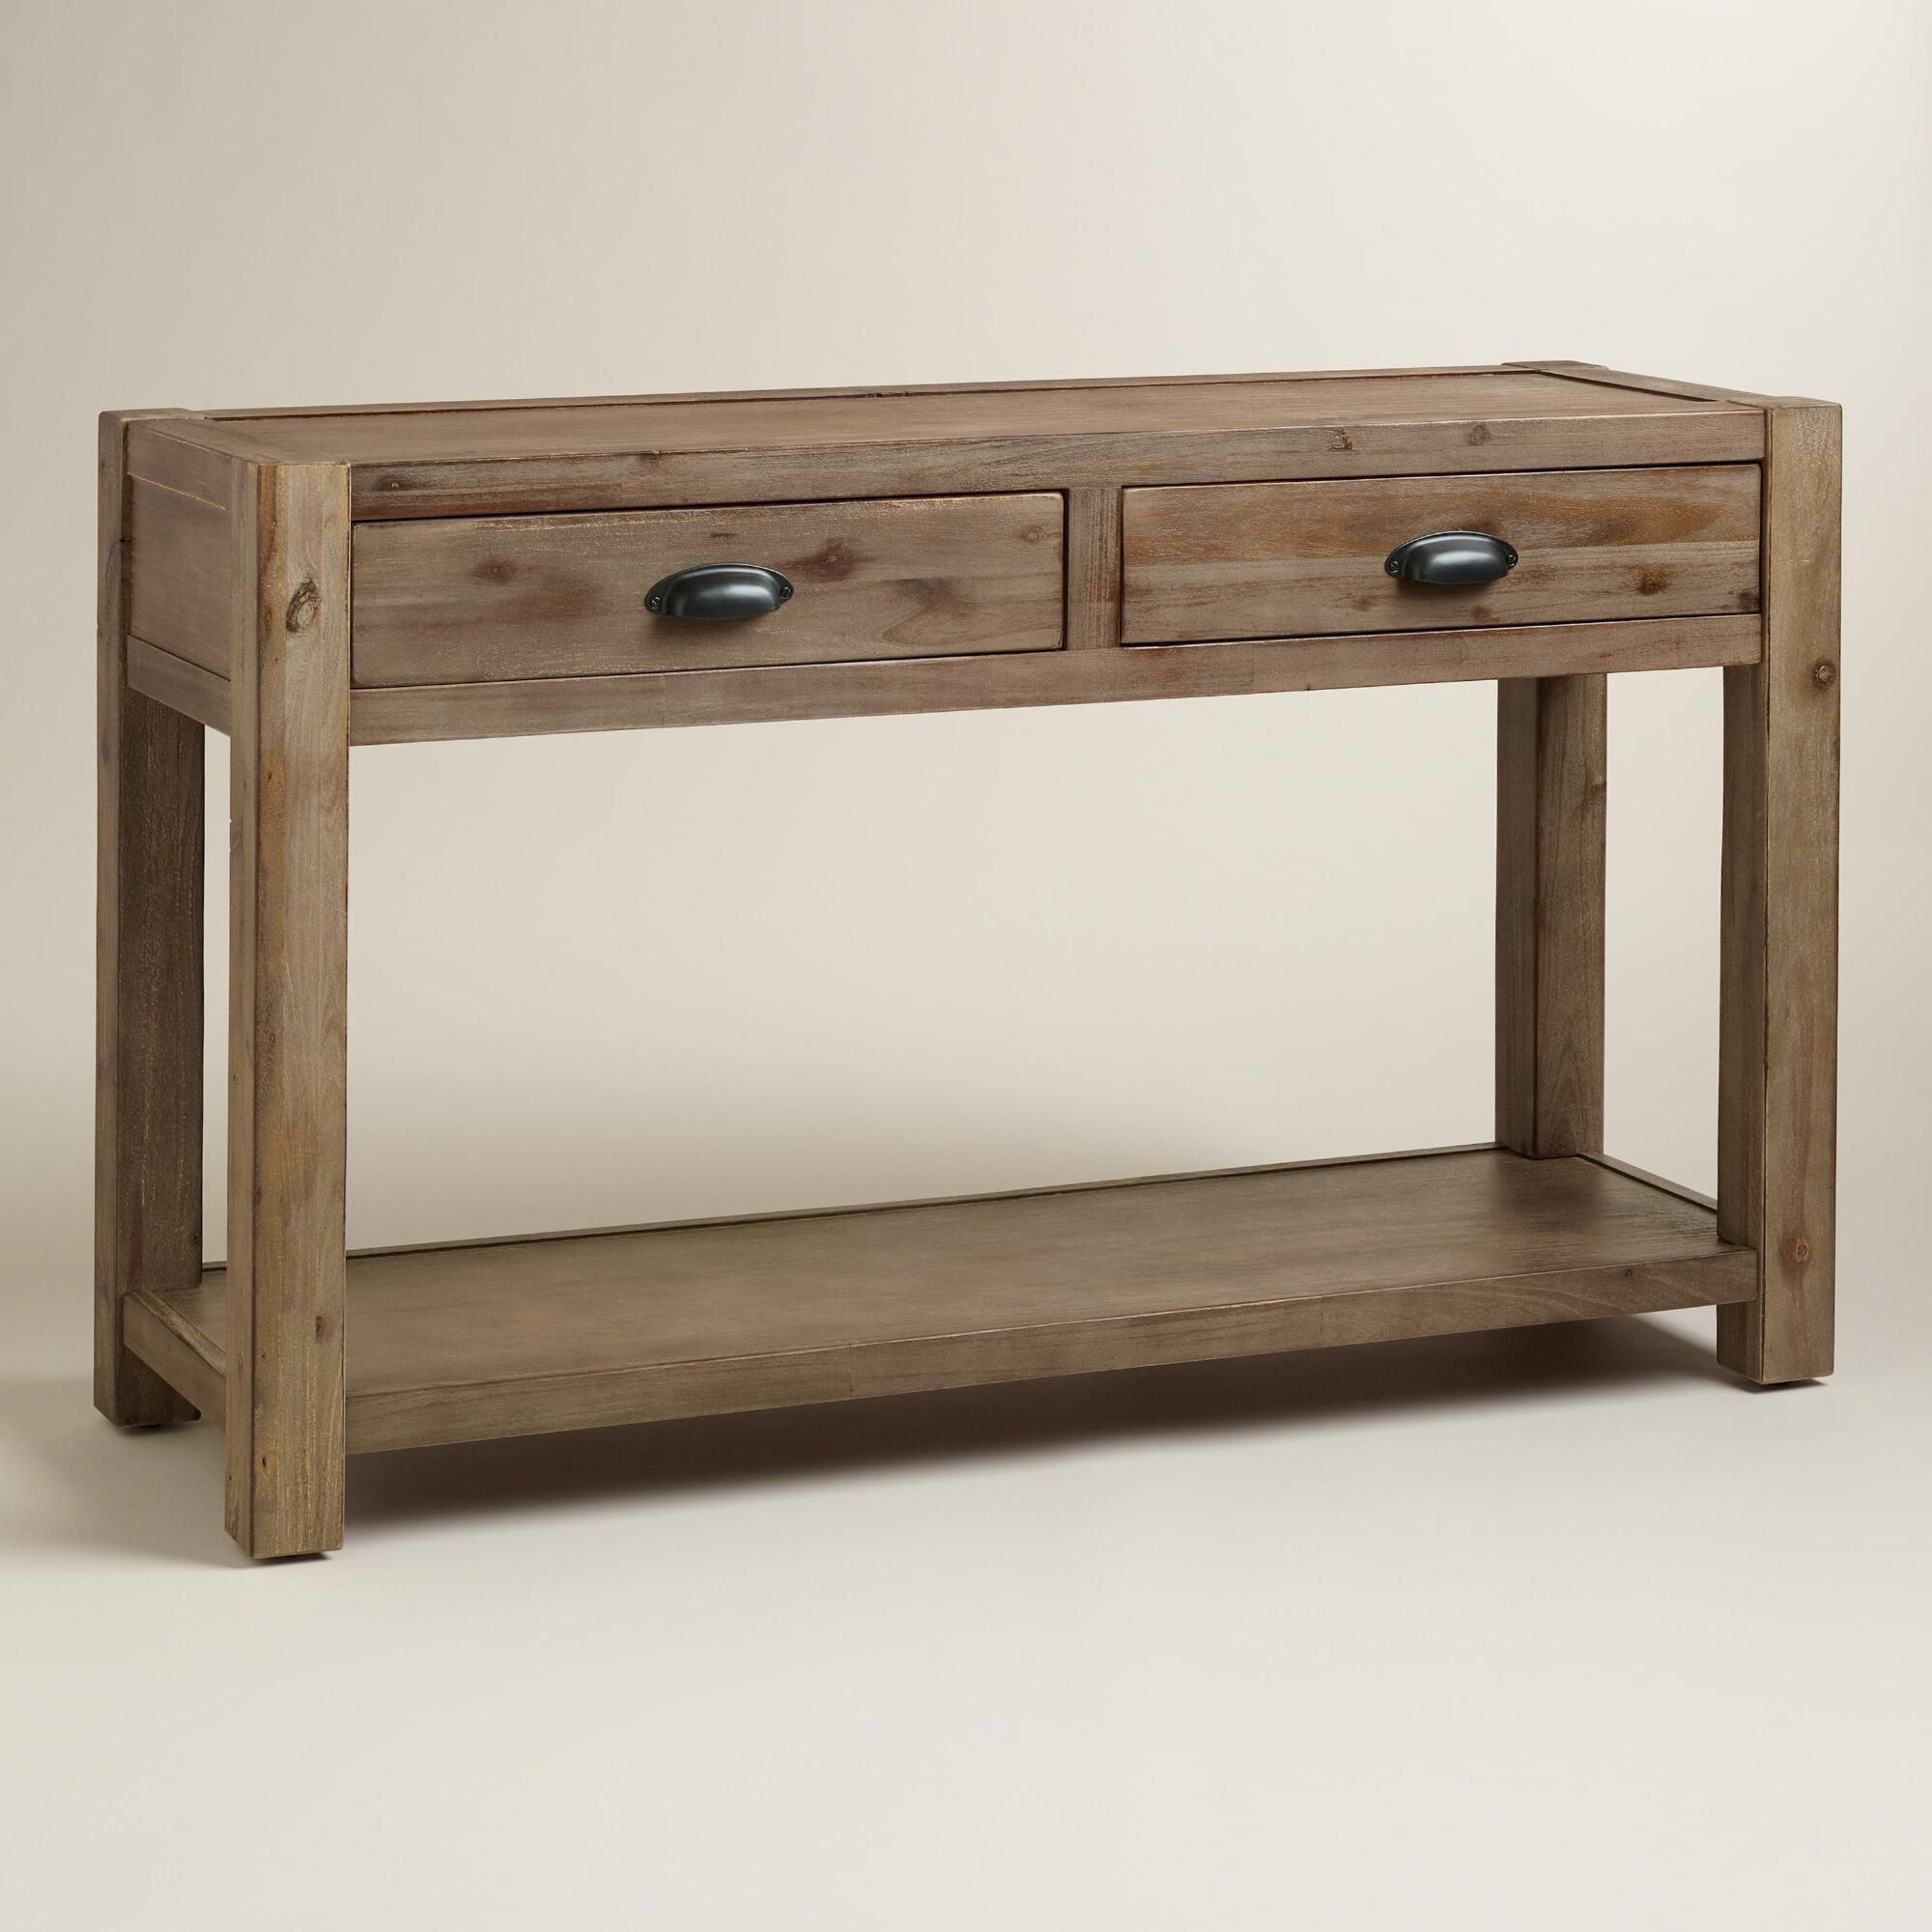 Wood Quade Console Table Rustic Console Tables Rustic Consoles Wood Console Table